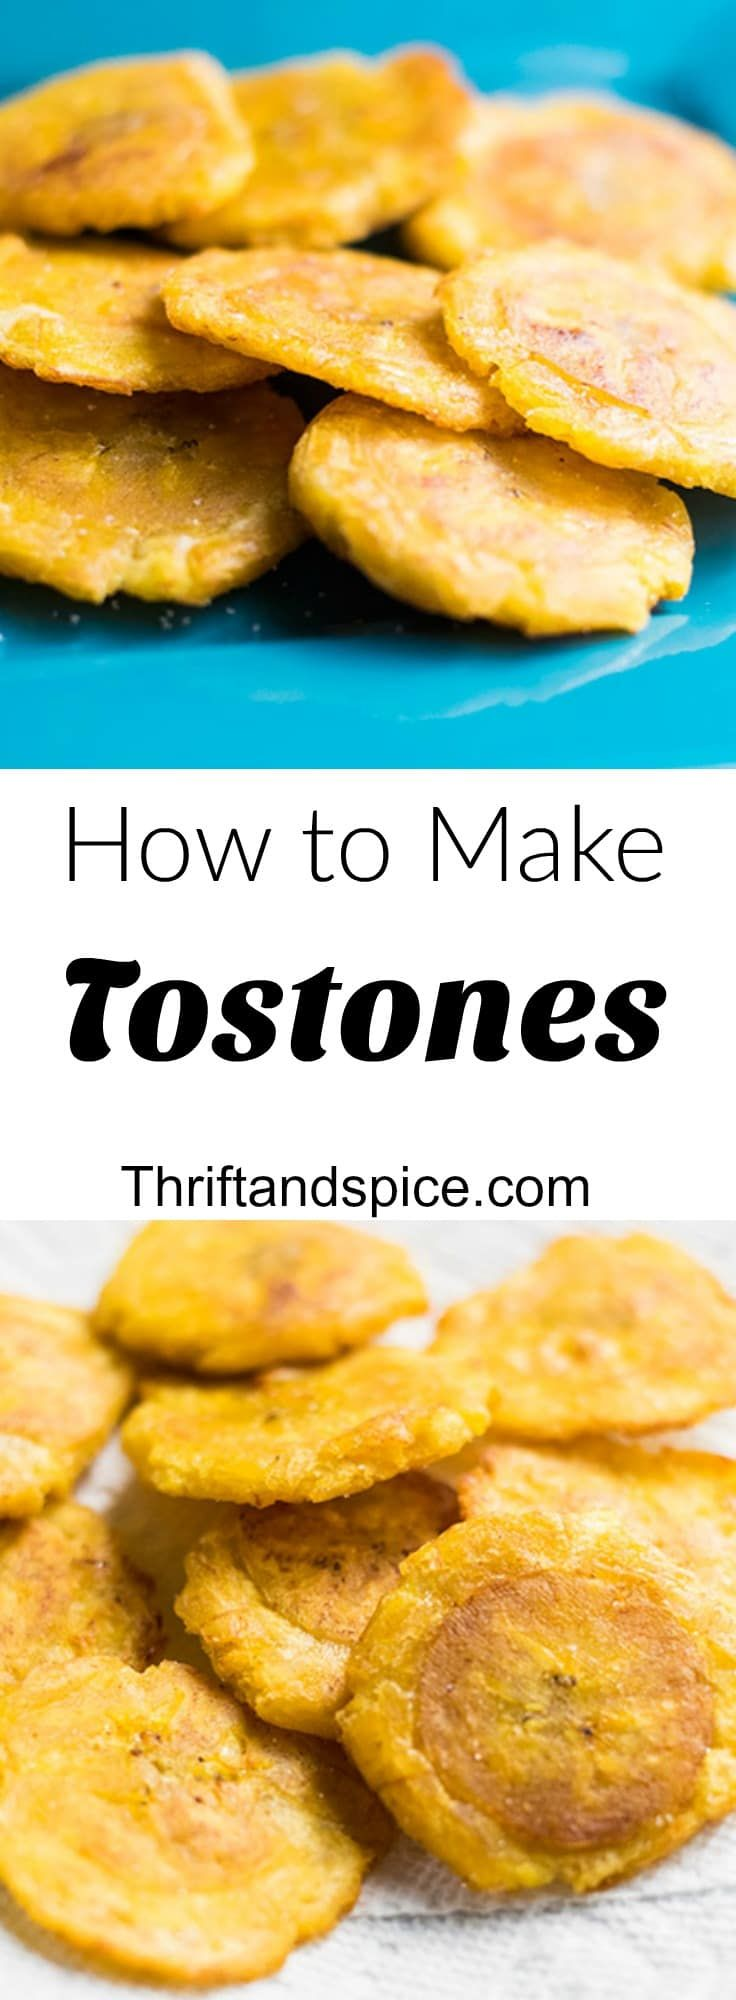 Tostones are a popular dish through out Latin American countries. Tostones are plantain slices that are twice fried so that they become crisp on the outside and soft on the inside.